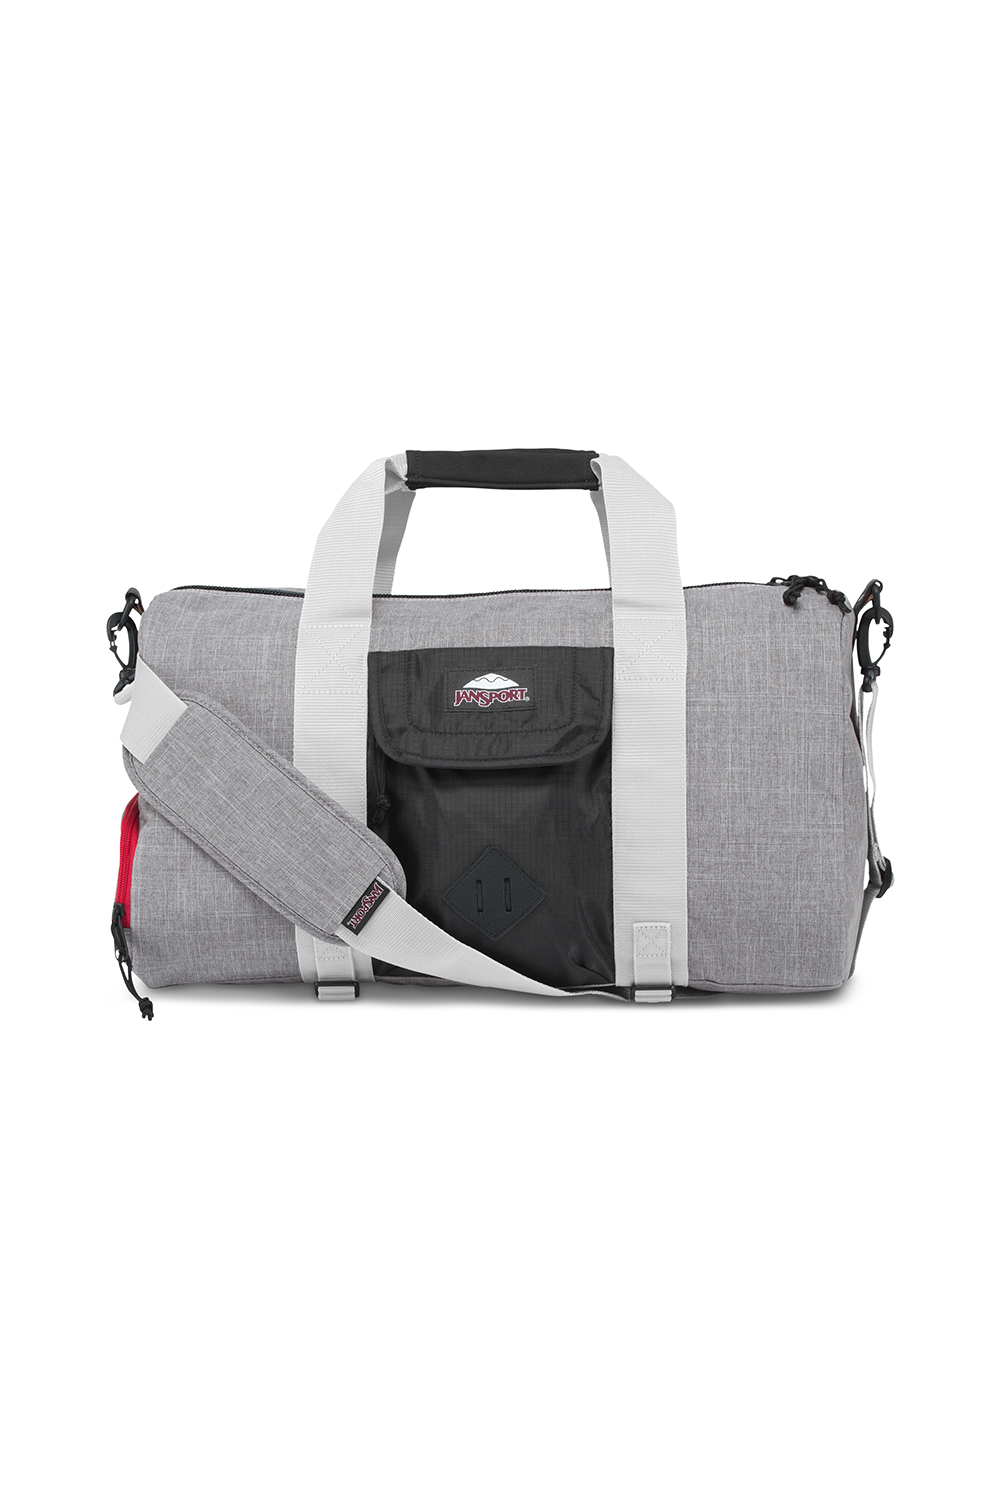 JanSport กระเป๋าเป้ รุ่น Duffel DL - Black Poly Ripstop/Grey Marl